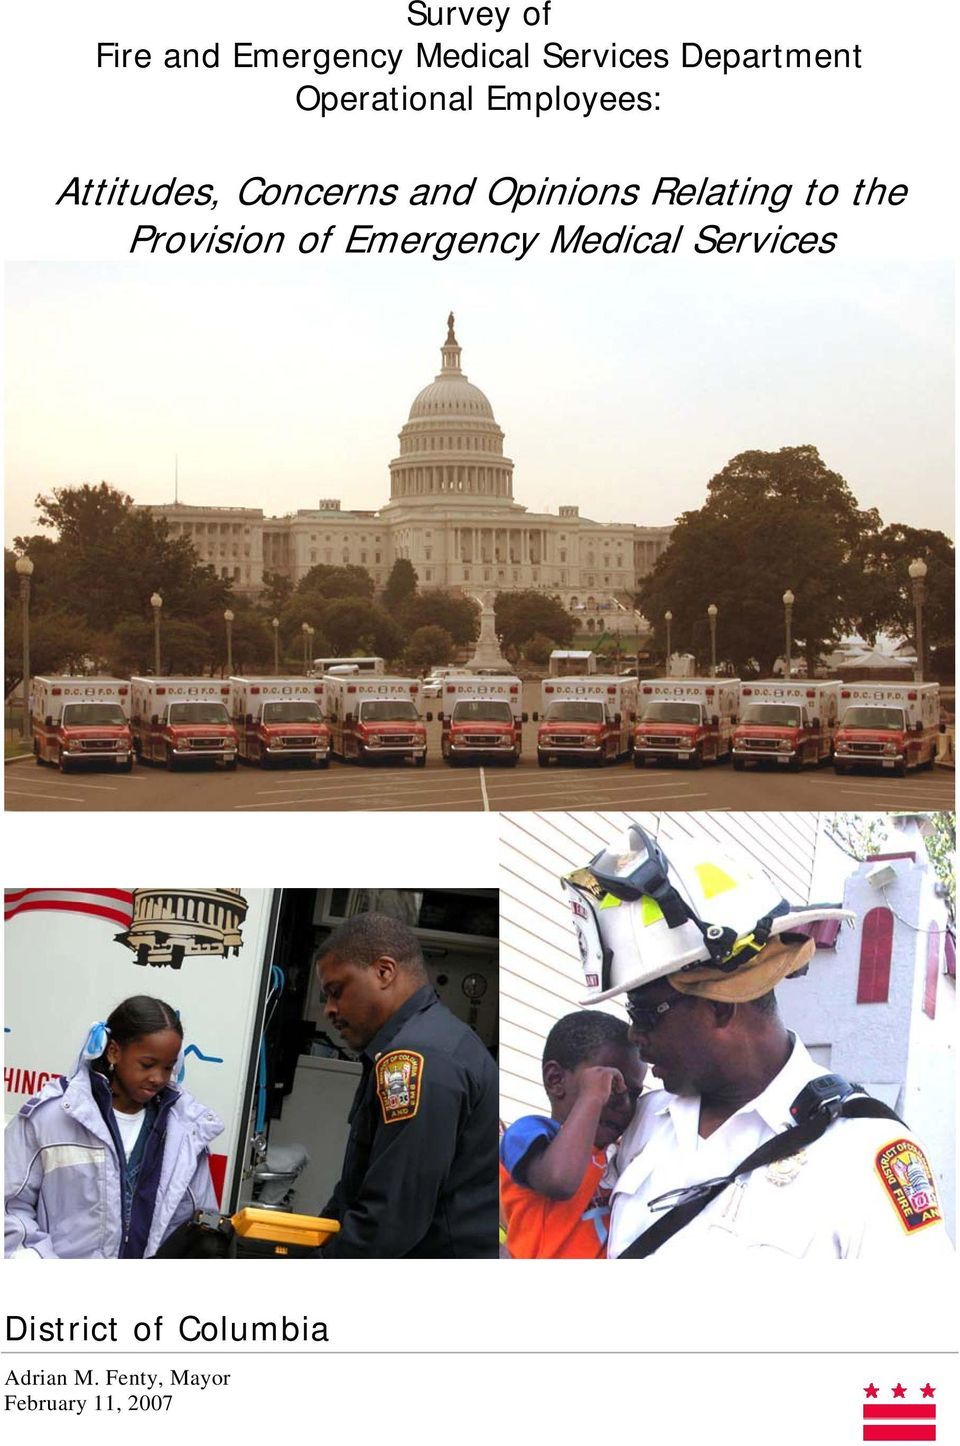 Relating to the Provision of Emergency Medical Services